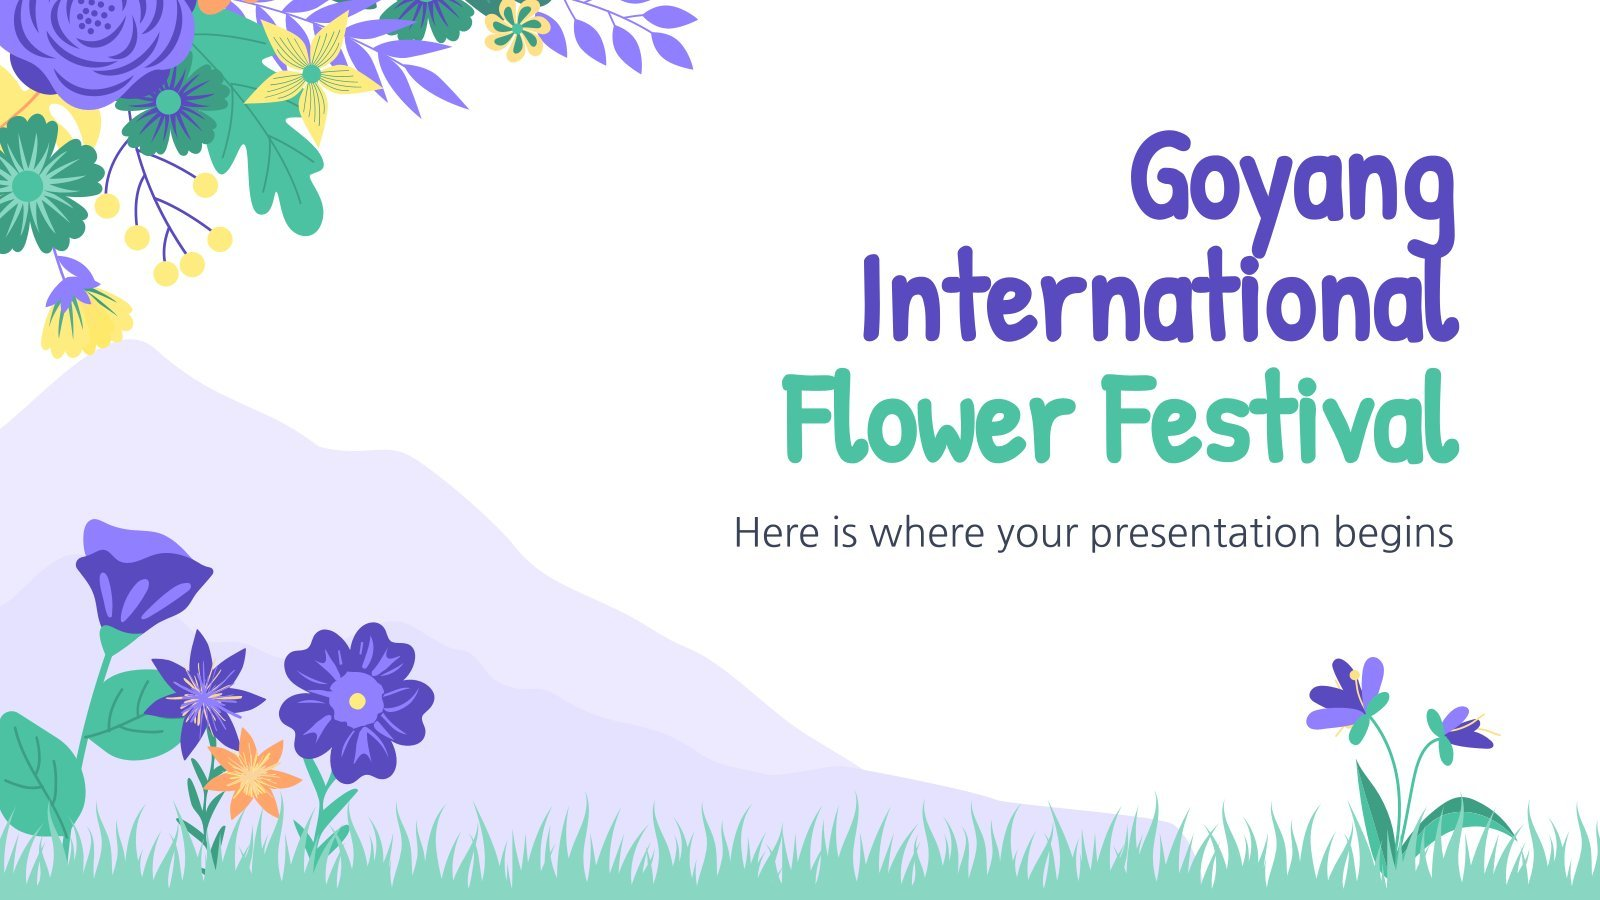 Goyang International Flower Festival presentation template